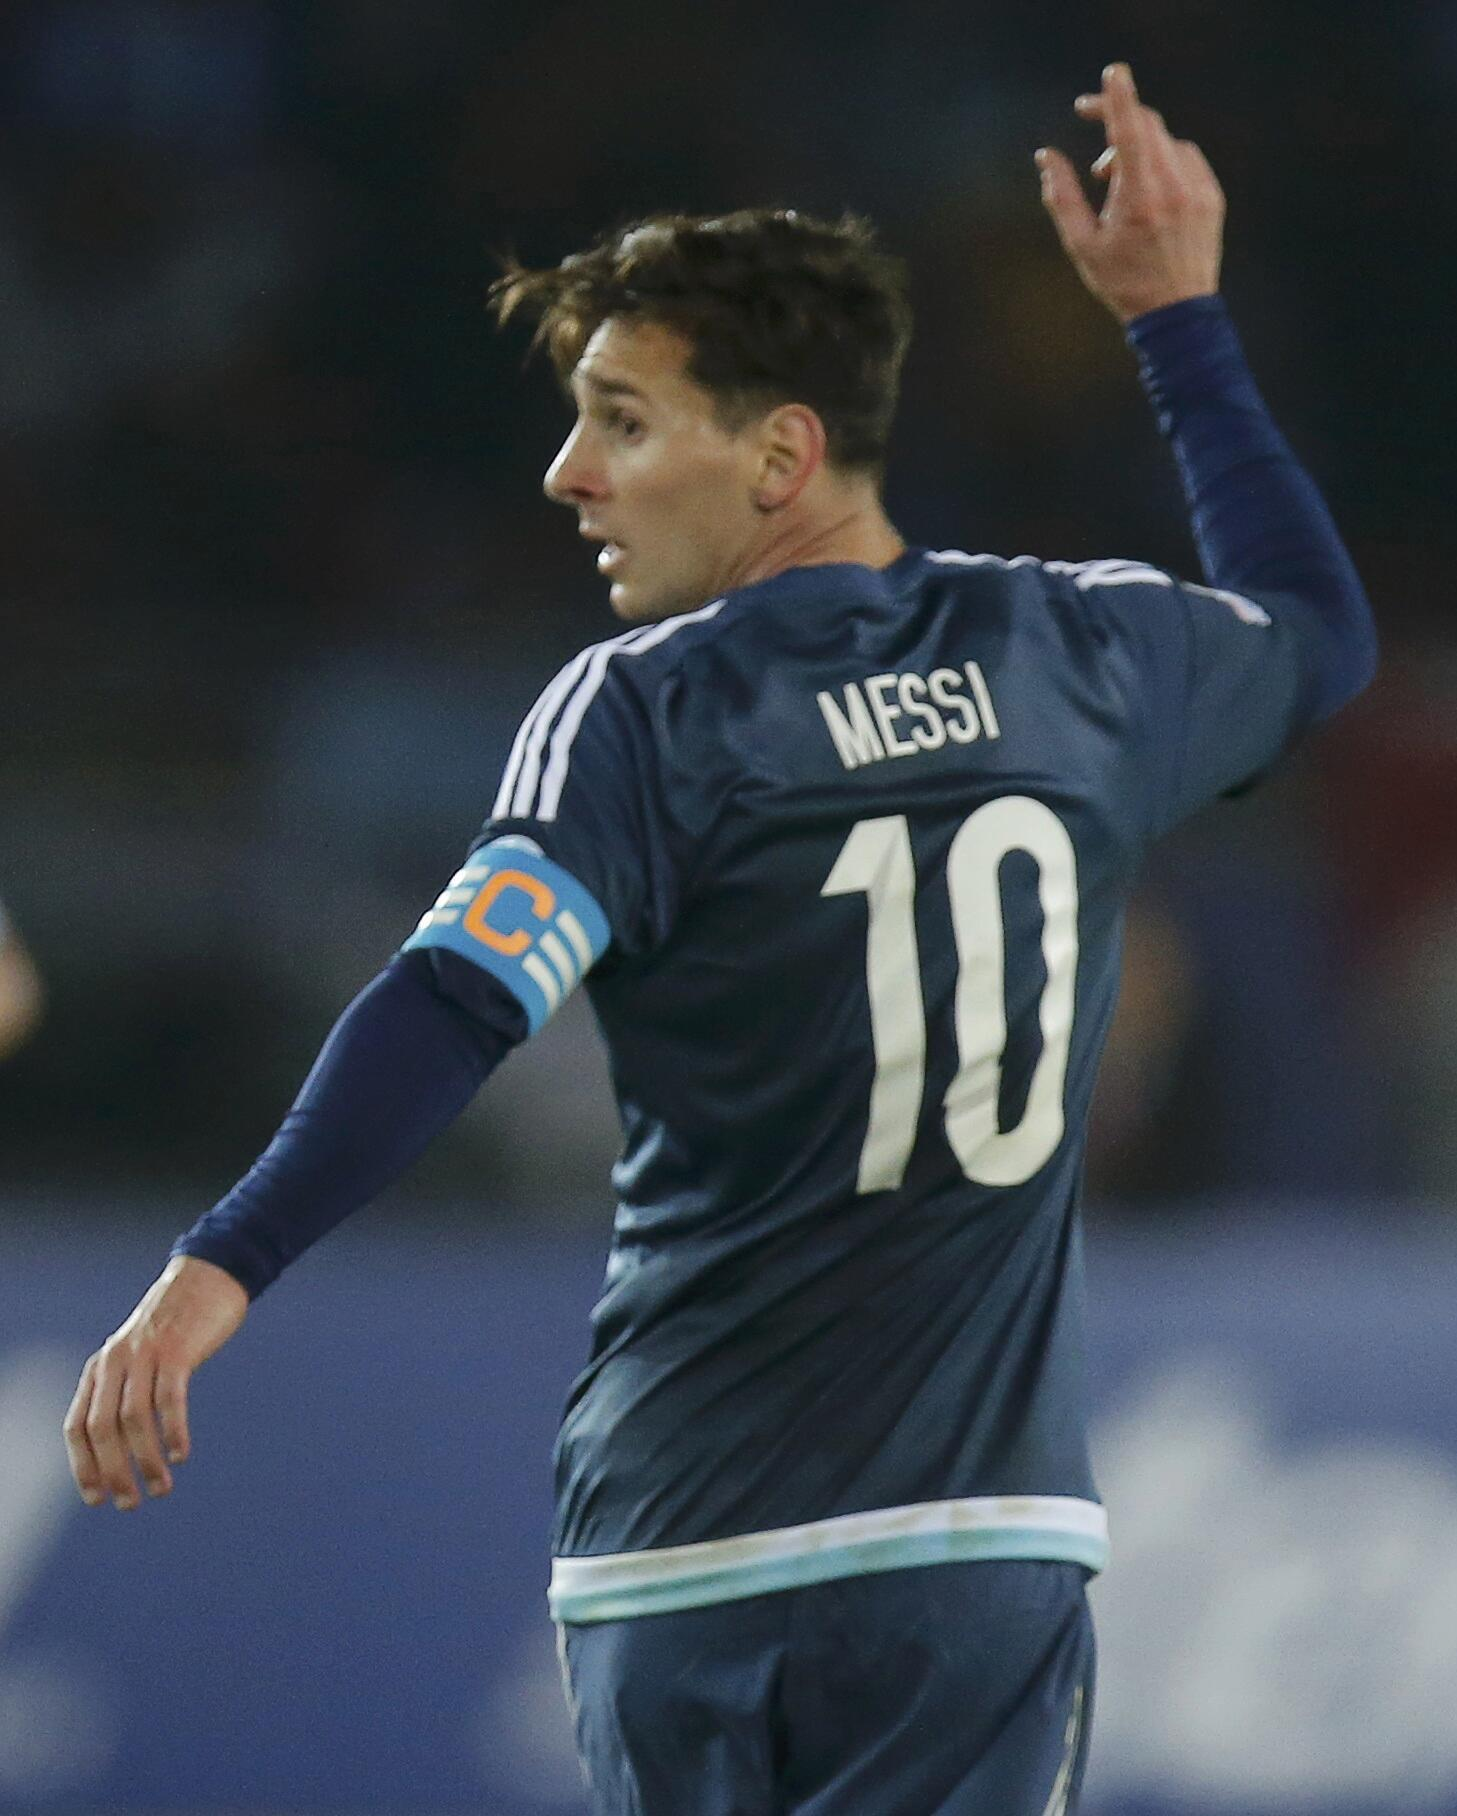 Lionel Messi is set to win his 100th cap for Argentina.